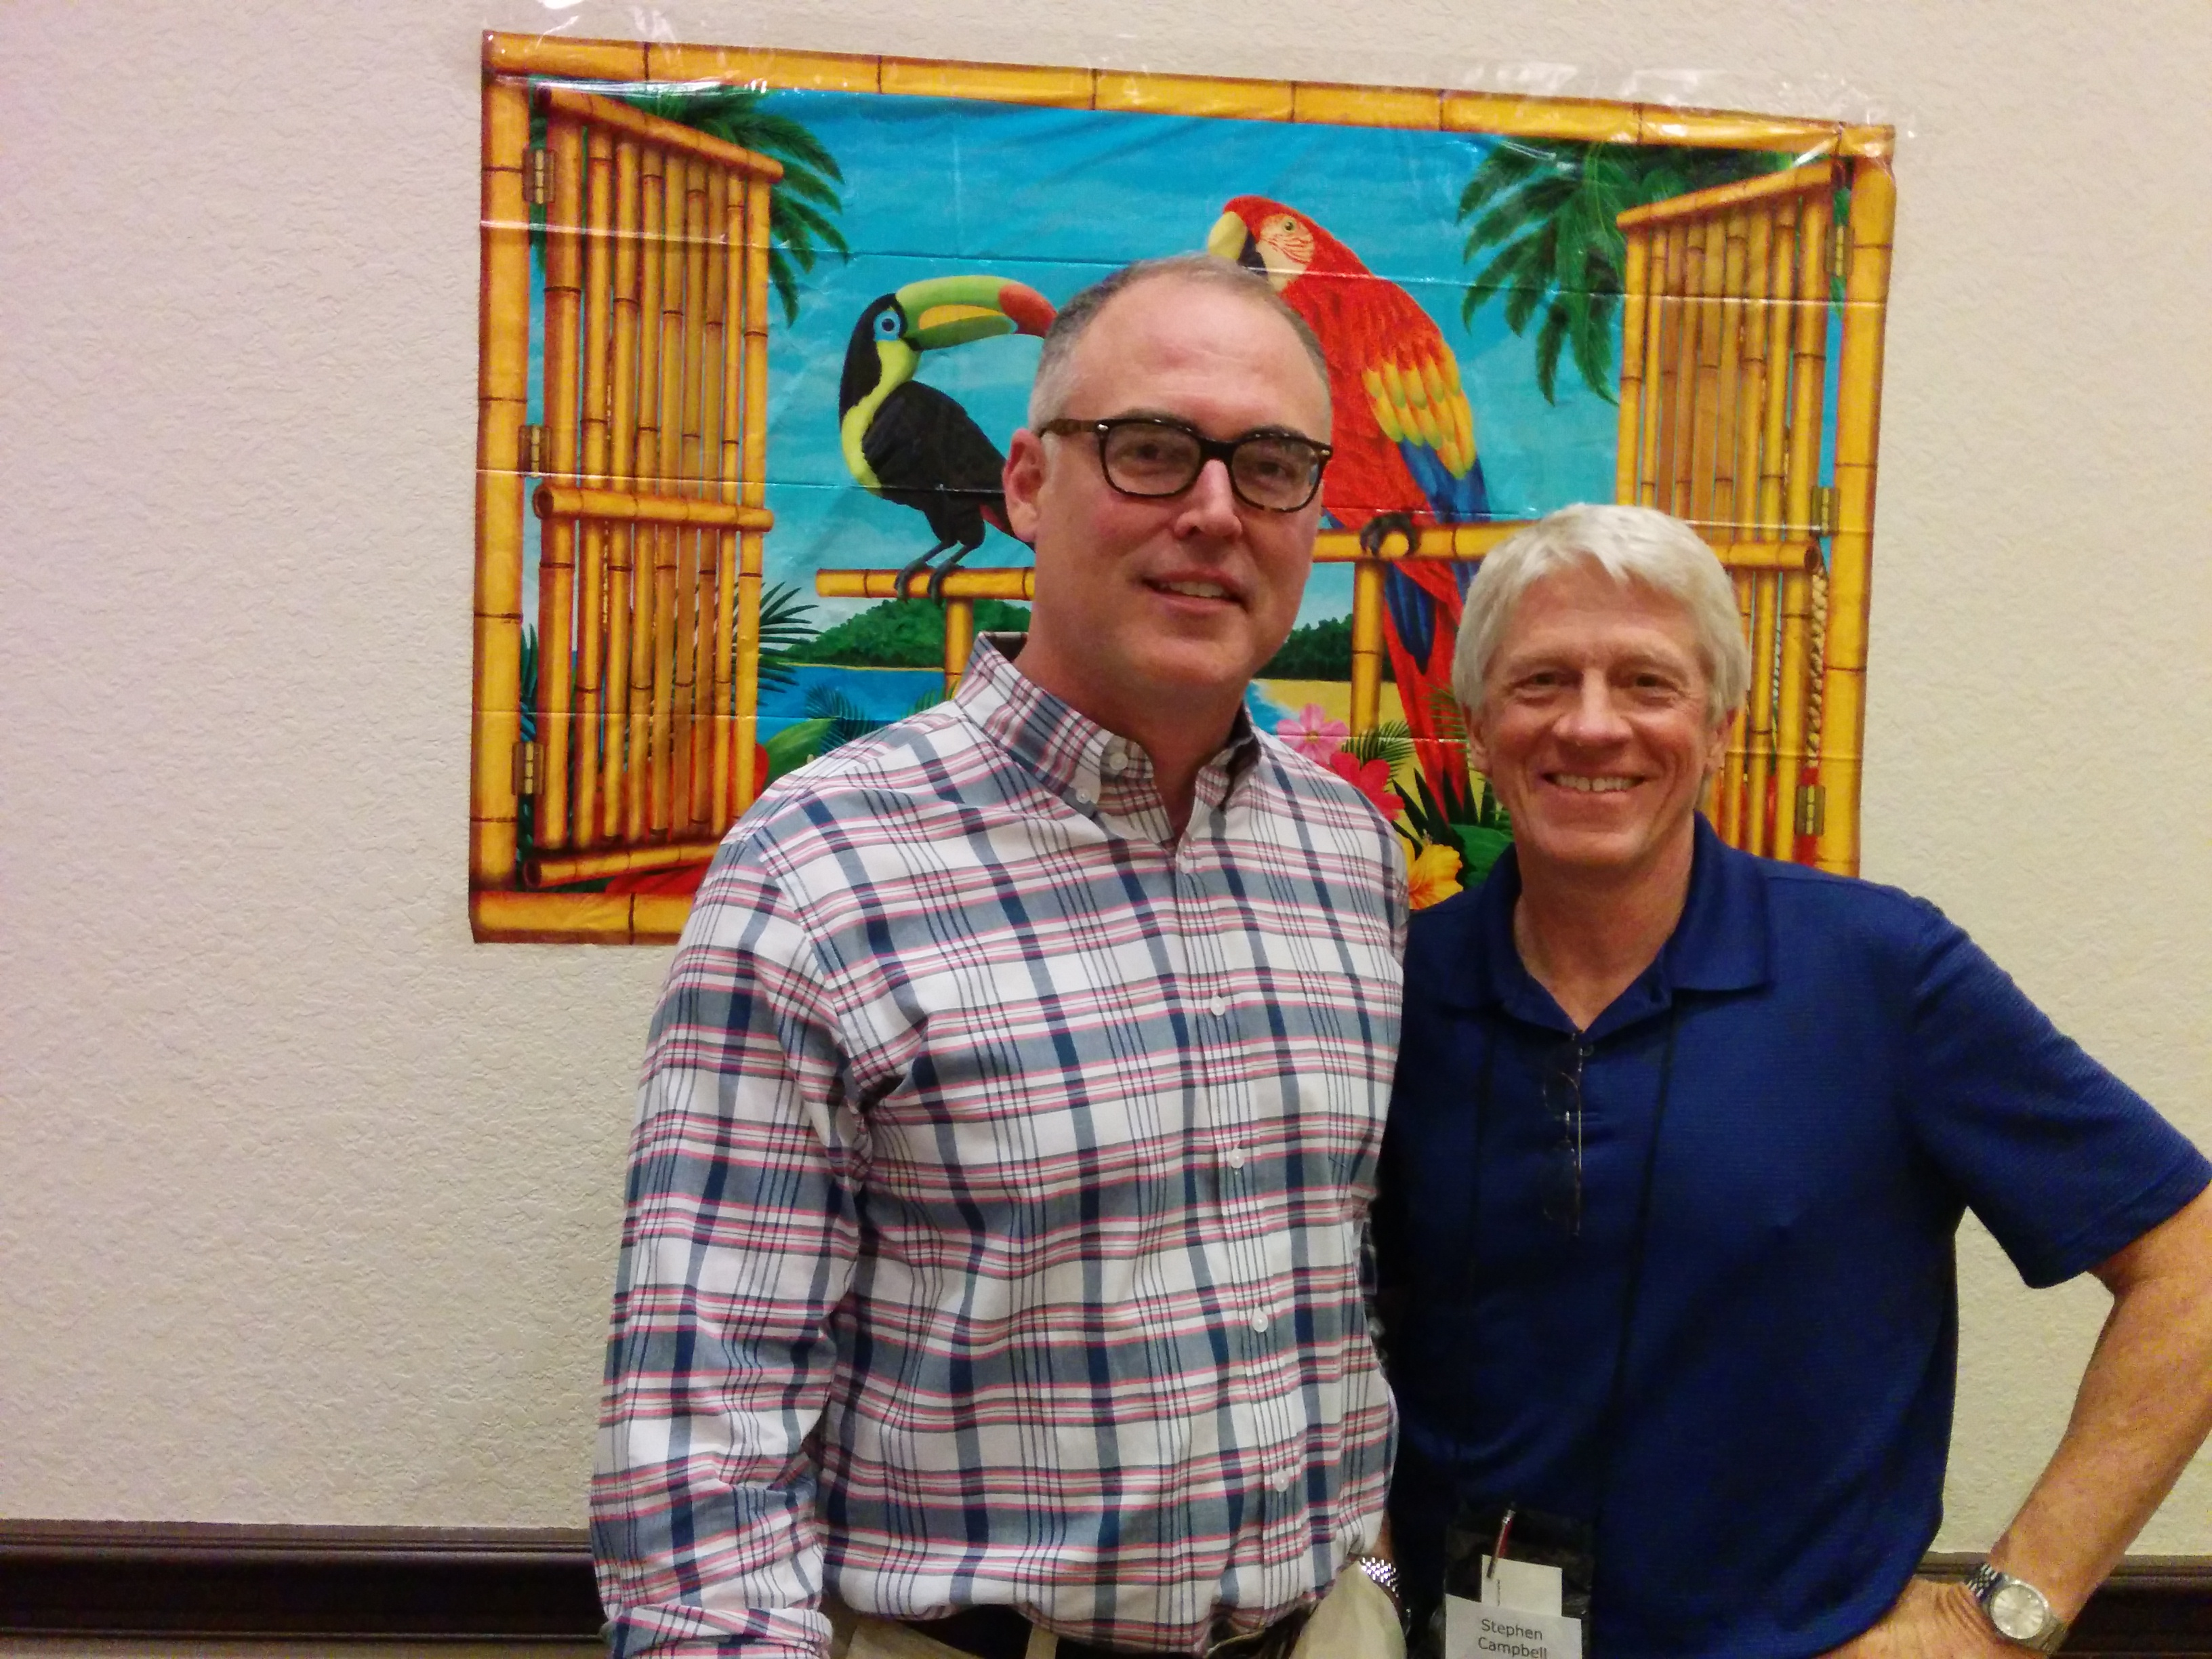 Ace Atkins and Stephen Campbell at Sleuthfest 2014